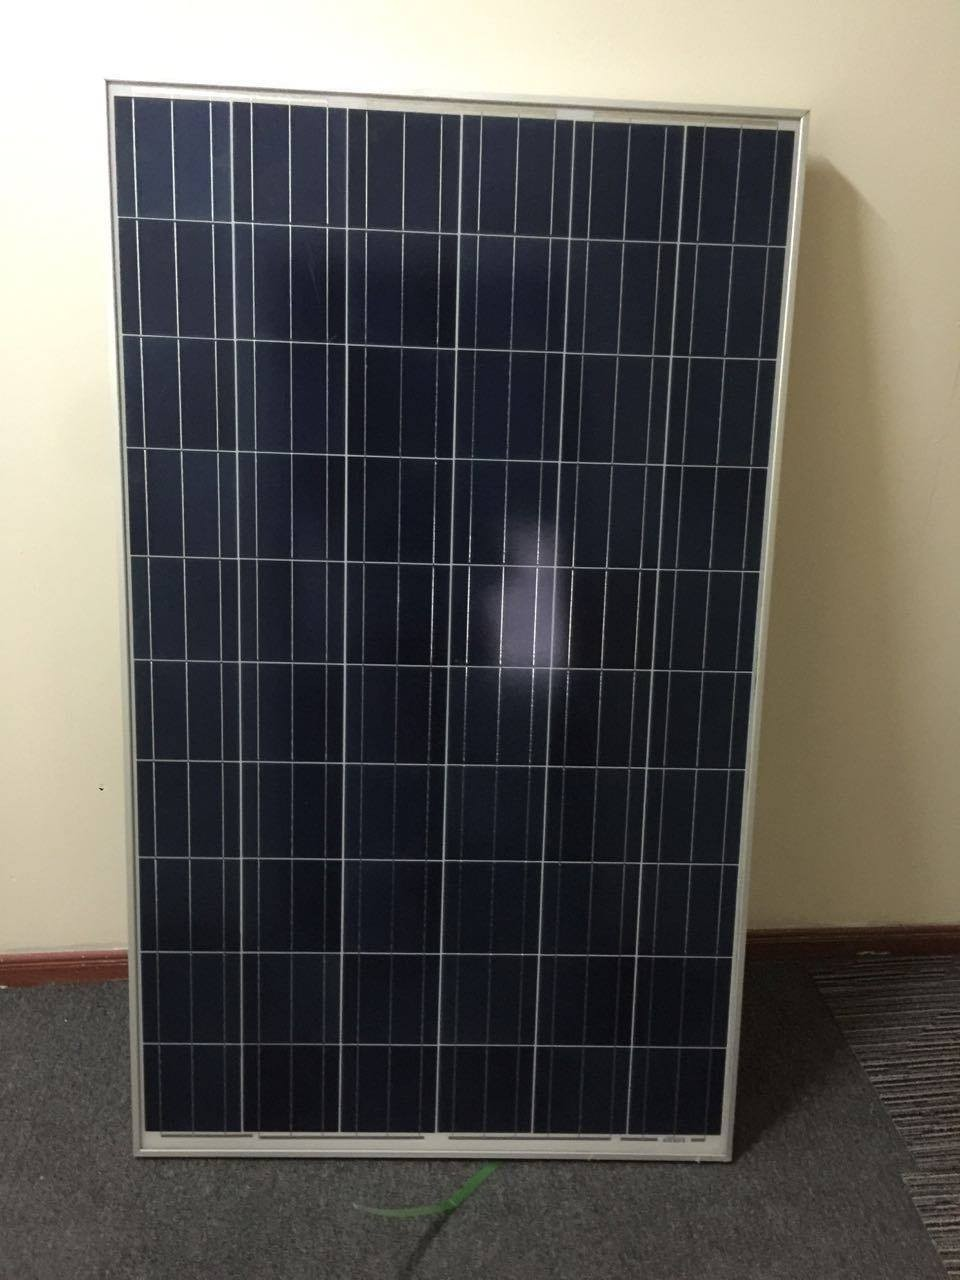 Christmas $0.35/W Yingli brand high quality 250-310W poly solar panels in stock for solar farm solar power system solar energy